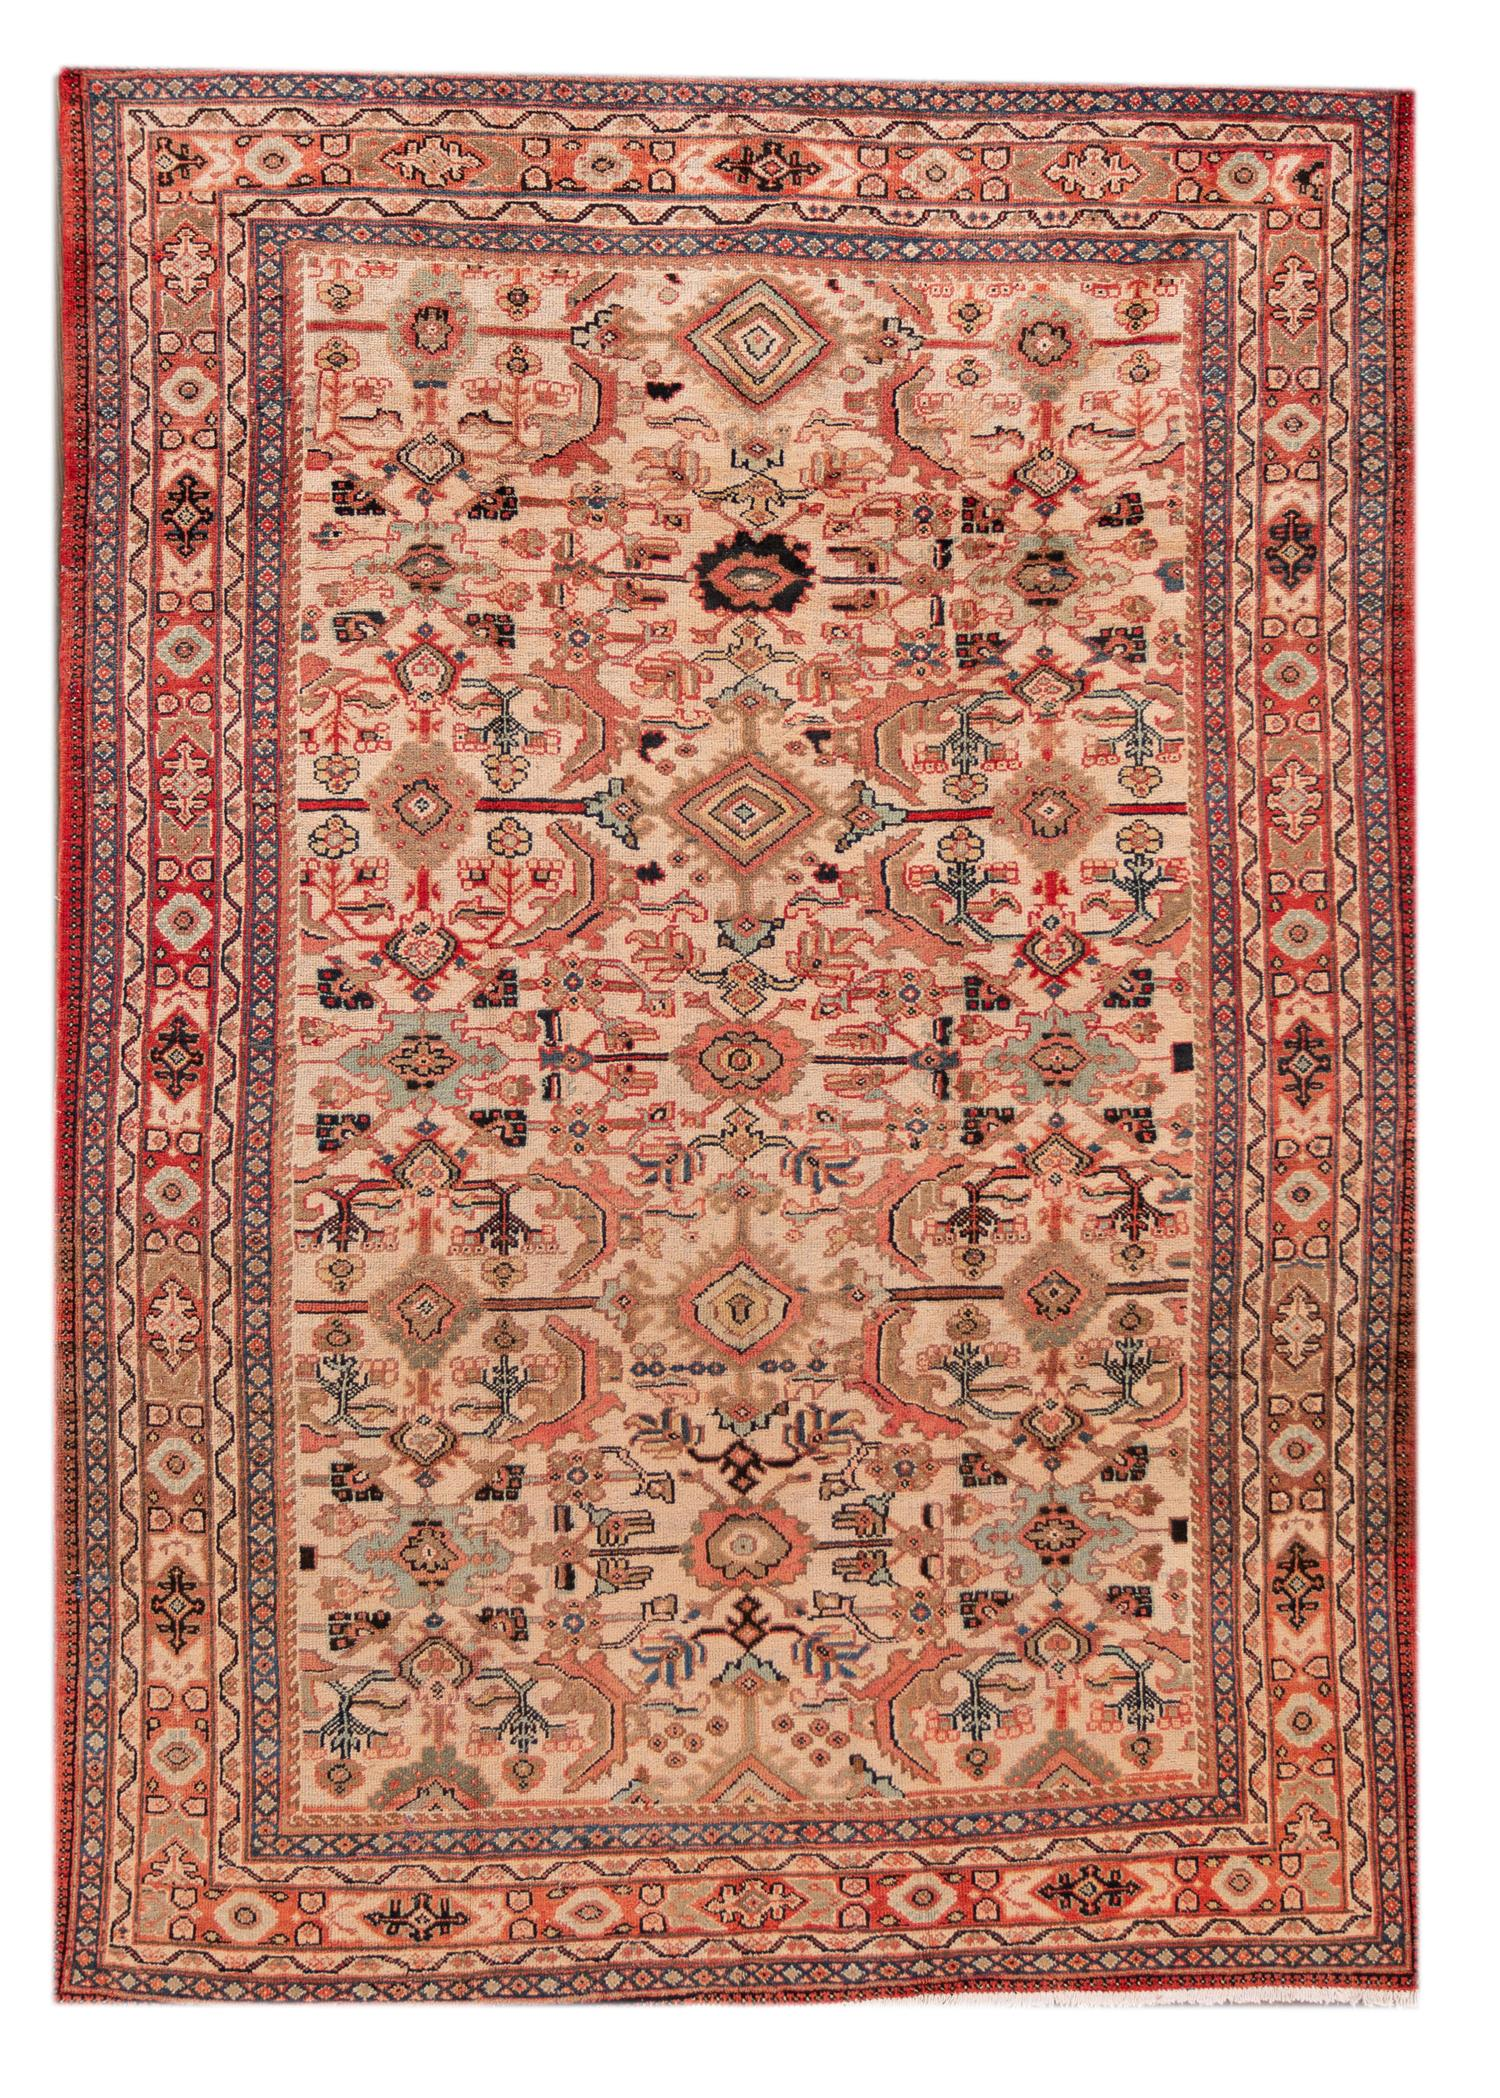 Antique 20th Century Mahal Rug, 8' X 11'